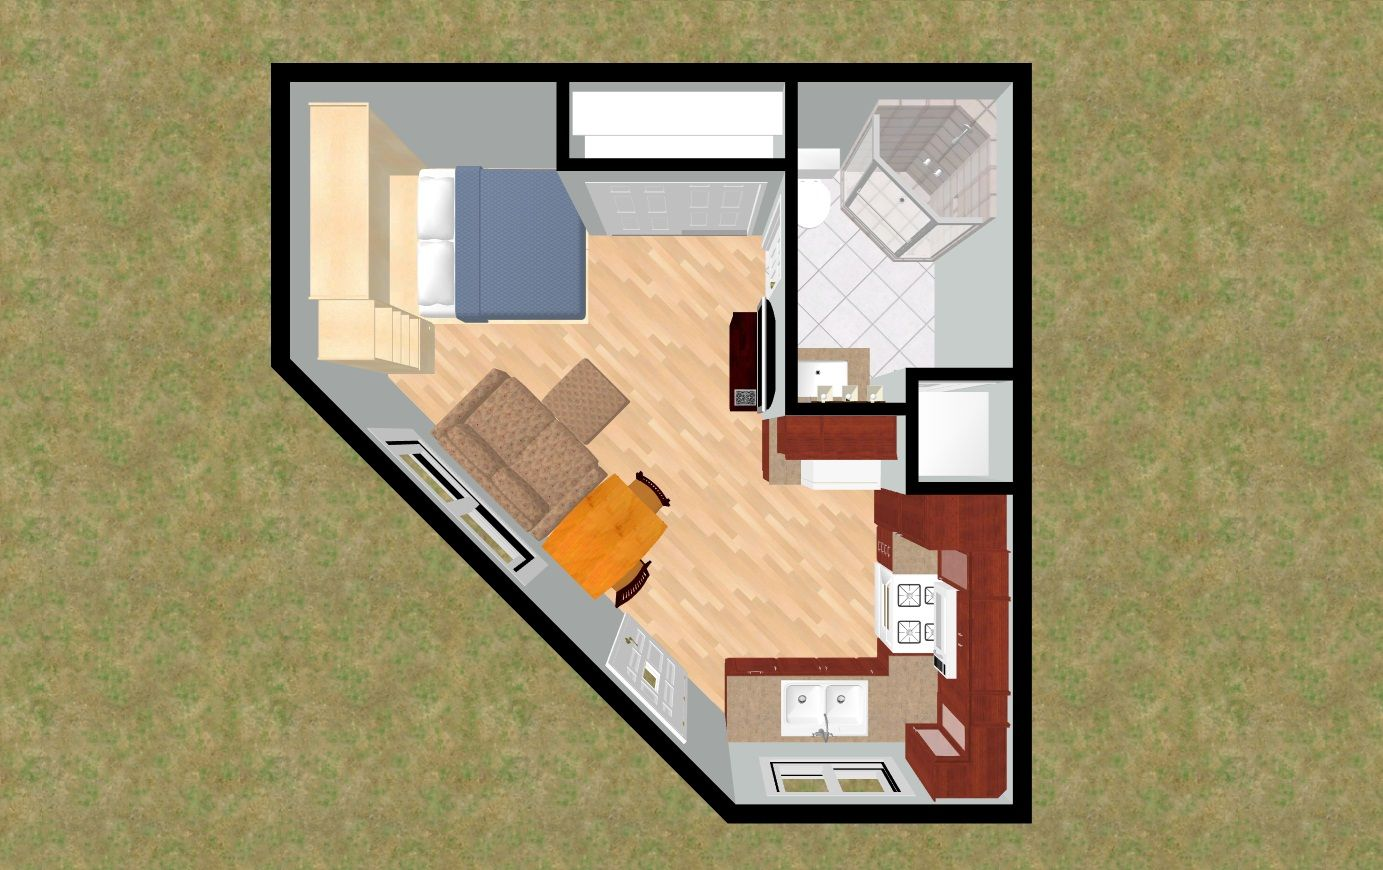 Small House Plans With Loft Bedroom Cozyhomeplanscom 330 Sq Ft Small House Floor Plan Octagon 4 Plex